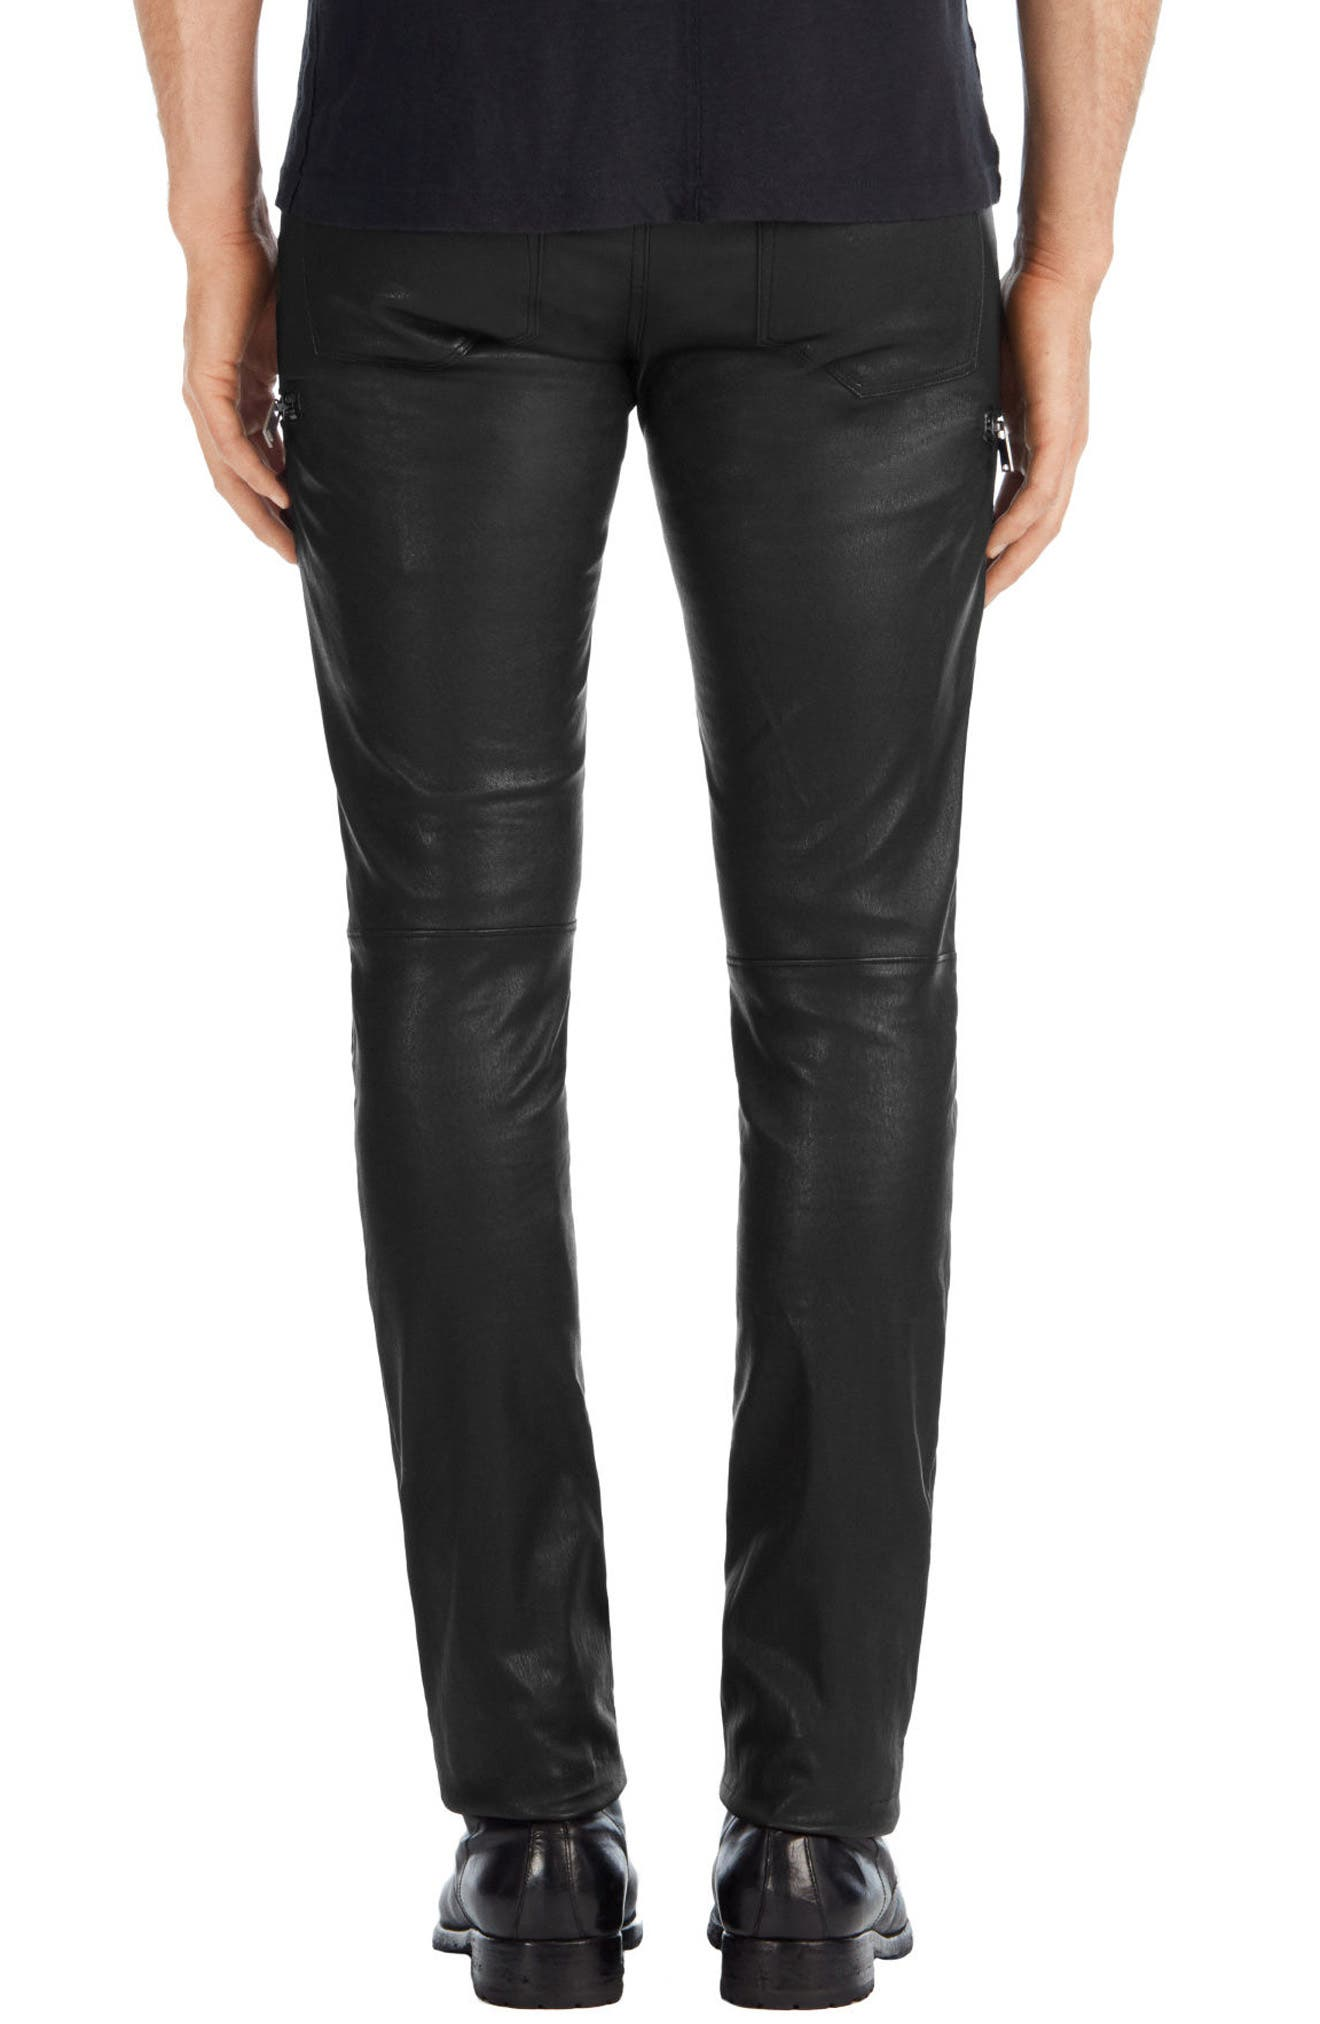 Acrux Skinny Fit Moto Leather Pants,                             Alternate thumbnail 2, color,                             001